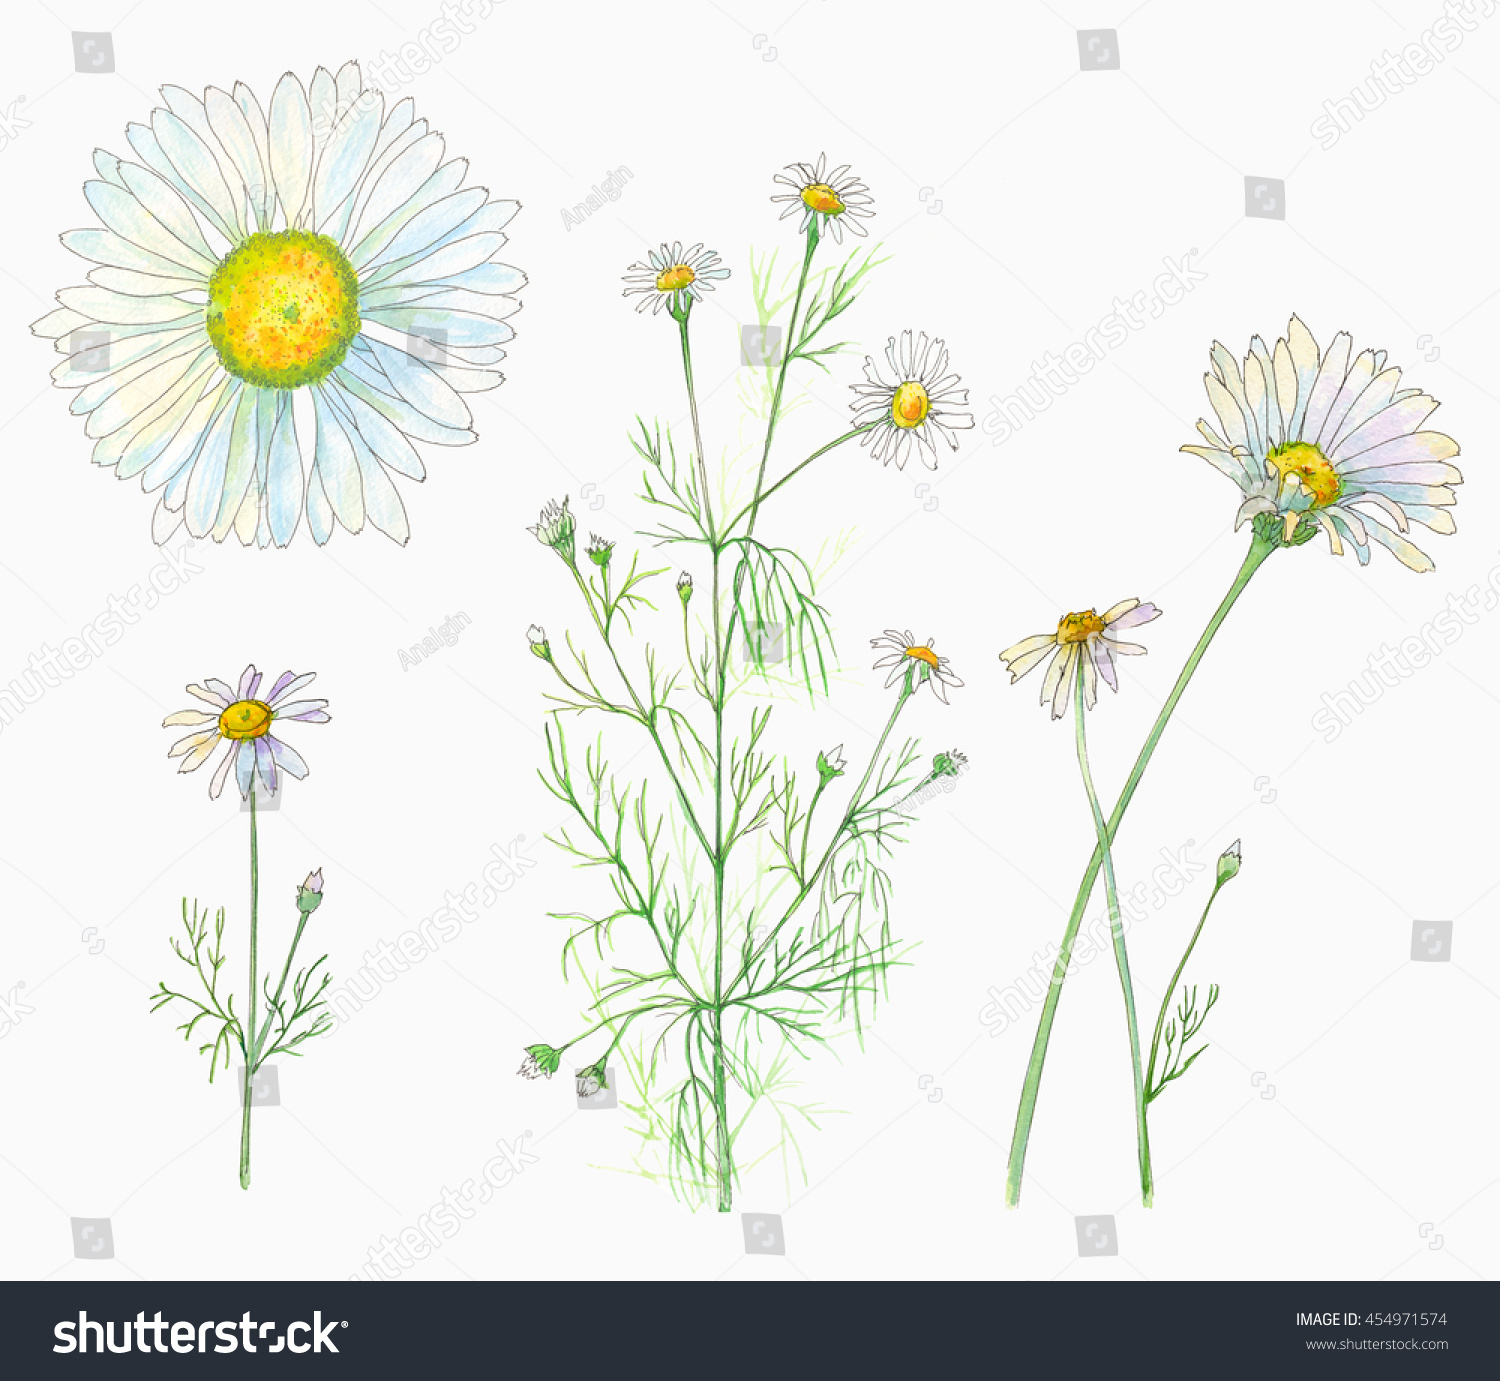 Set chamomile daisy flowers leaves bouquet stock illustration set of chamomile daisy flowers and leaves bouquet watercolor painting realistic izmirmasajfo